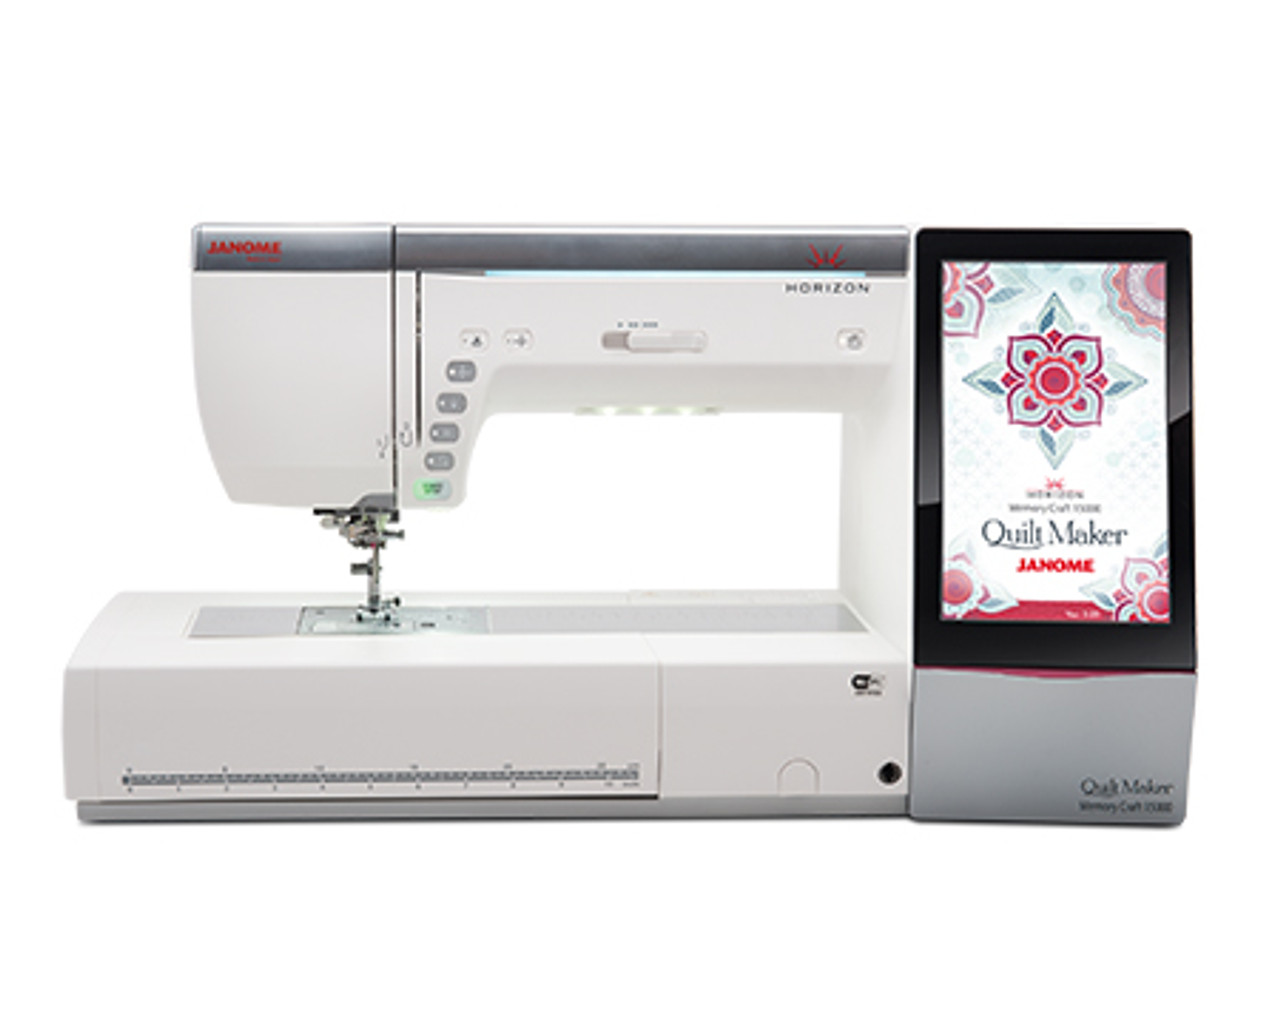 Embroidery Cleaning and Adjusting - $99.99